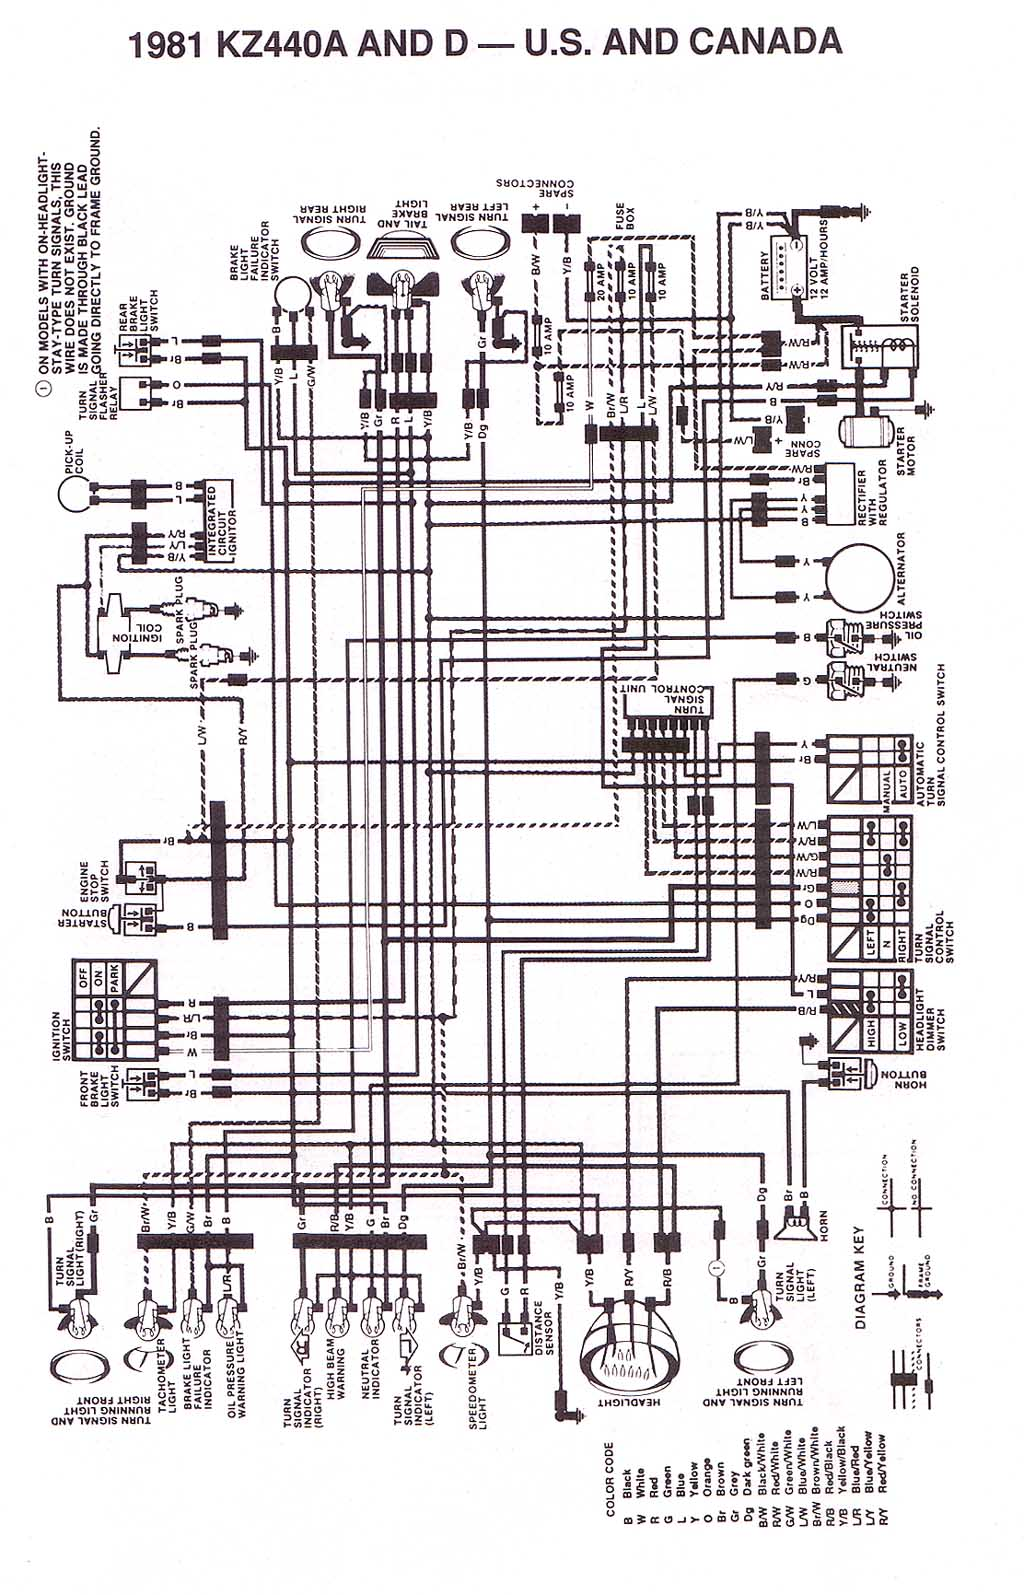 KZ440A and D wiring diagram %28US%29 1981 kawasaki ltd 440 rebuild thread page 5 barf bay area kz440 wiring harness at honlapkeszites.co